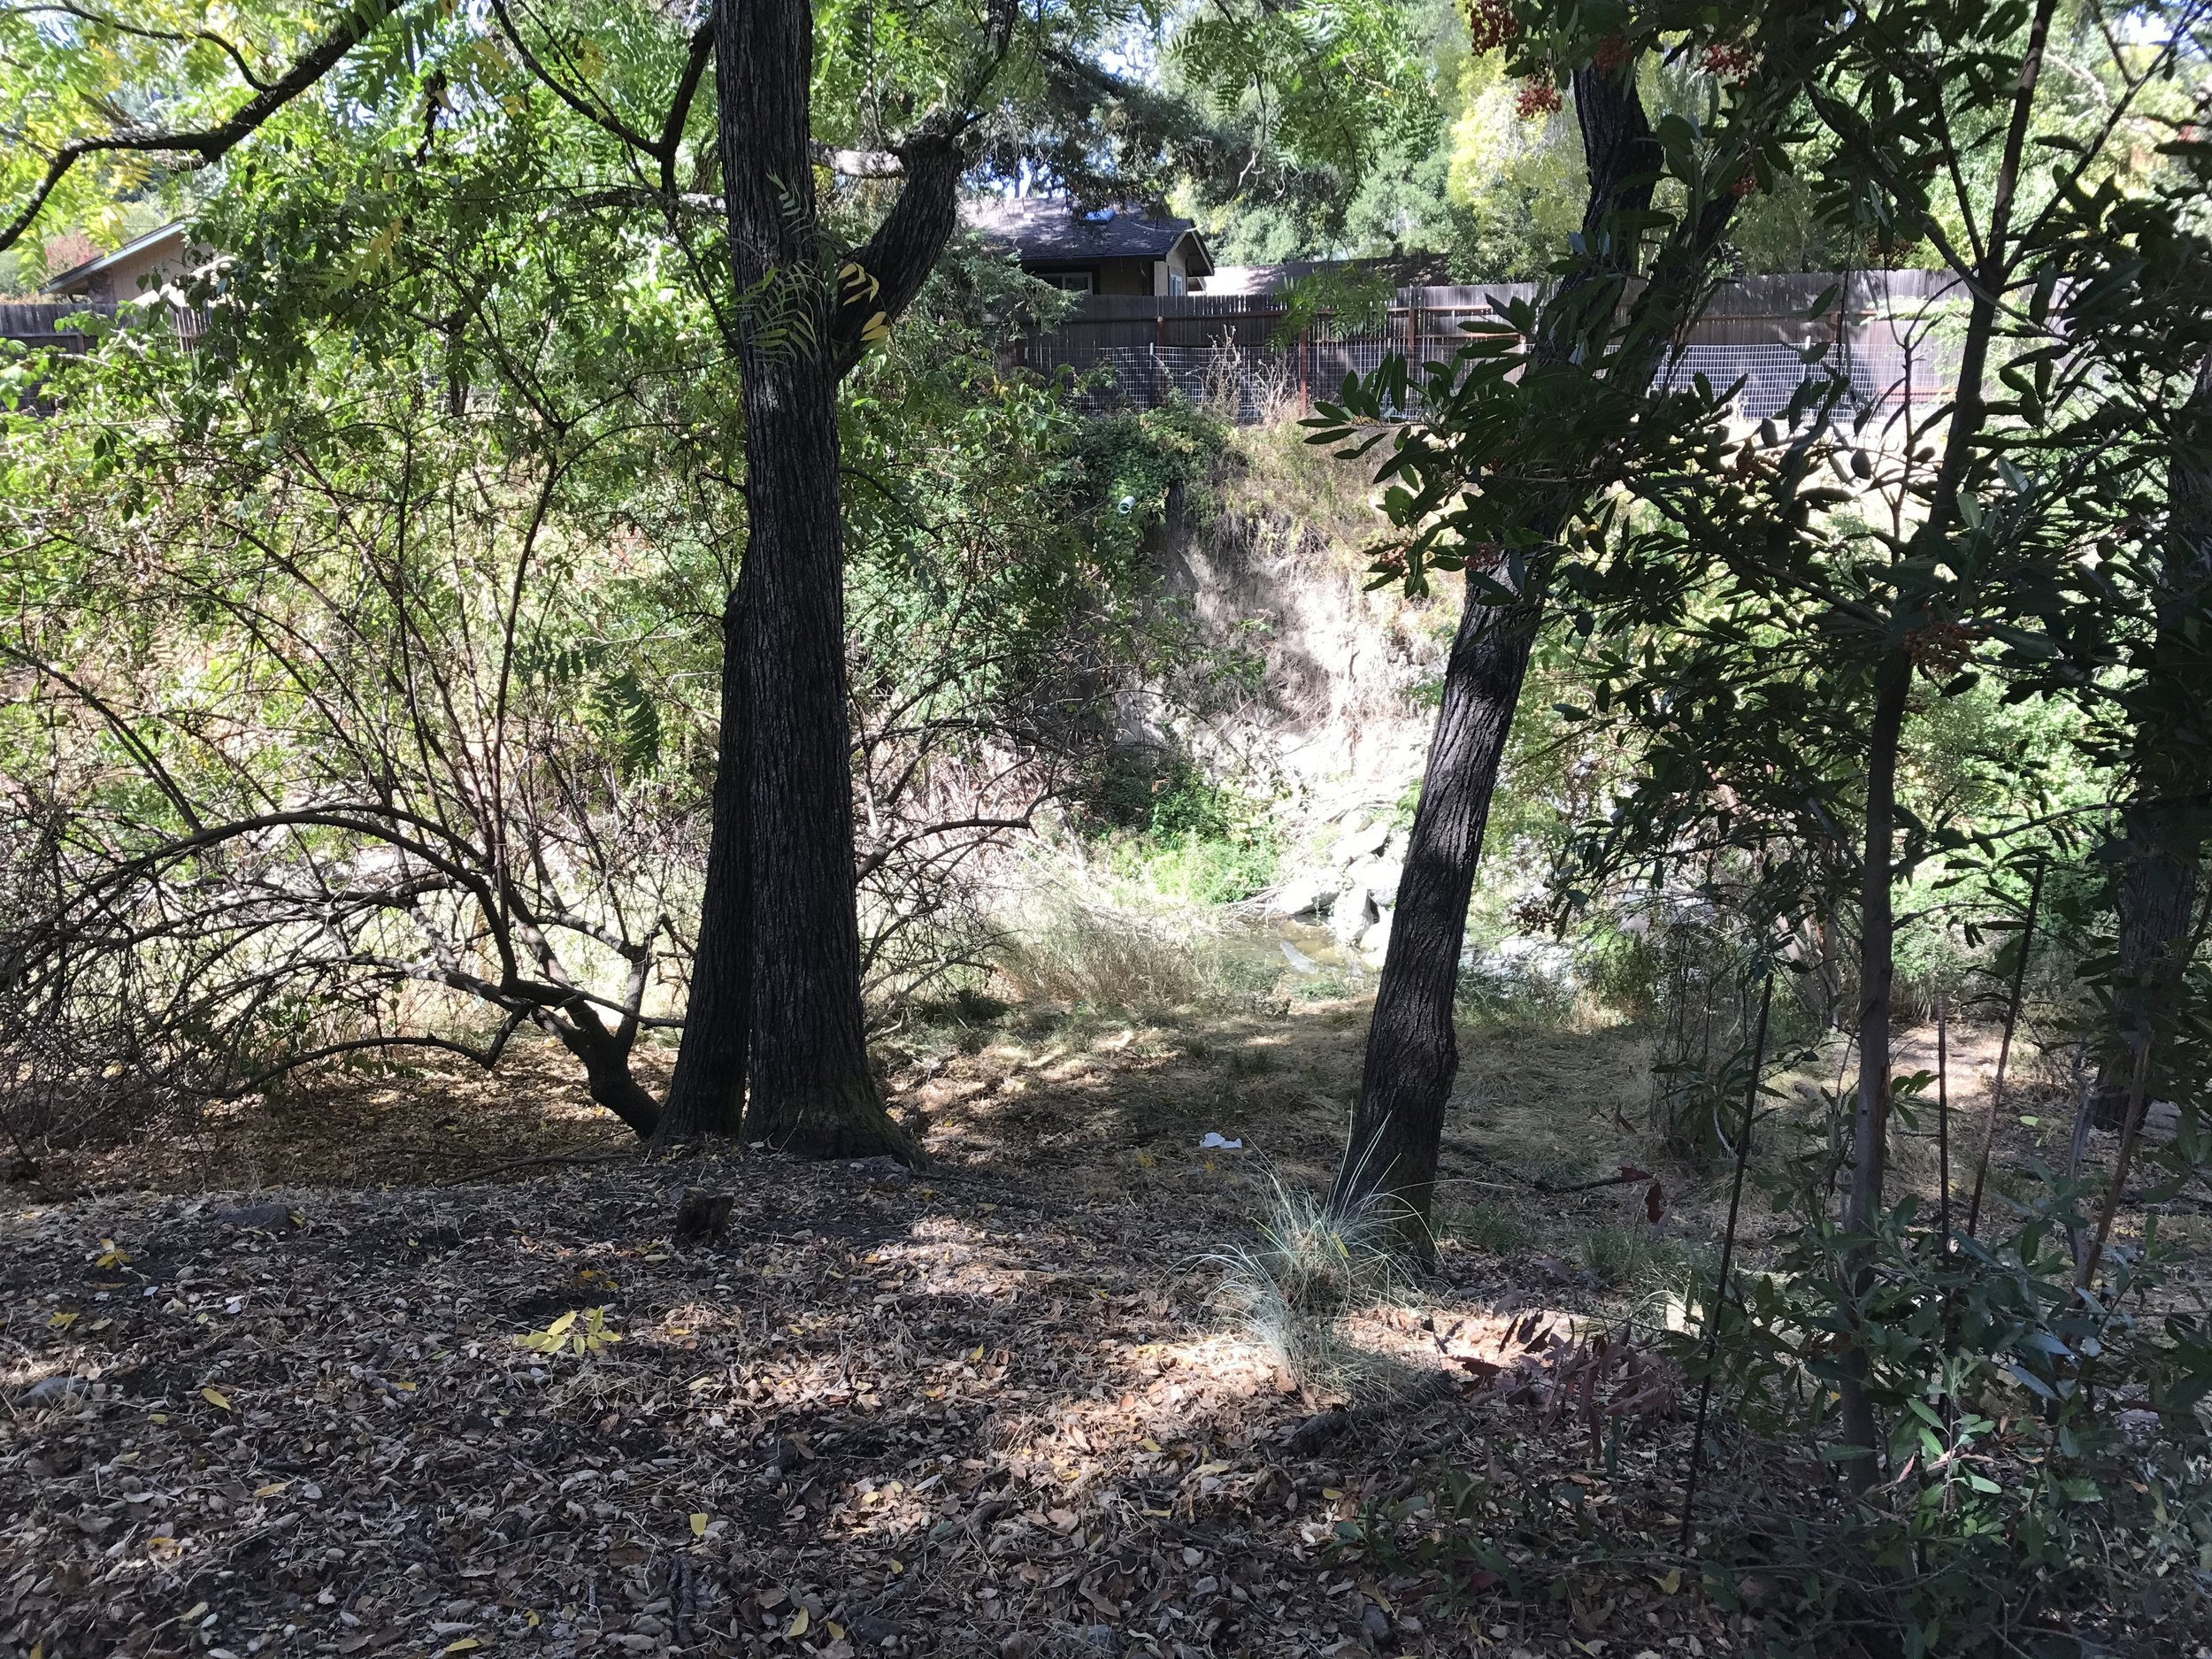 Riparian area near Las Trampas Creek in Leigh Creekside Park